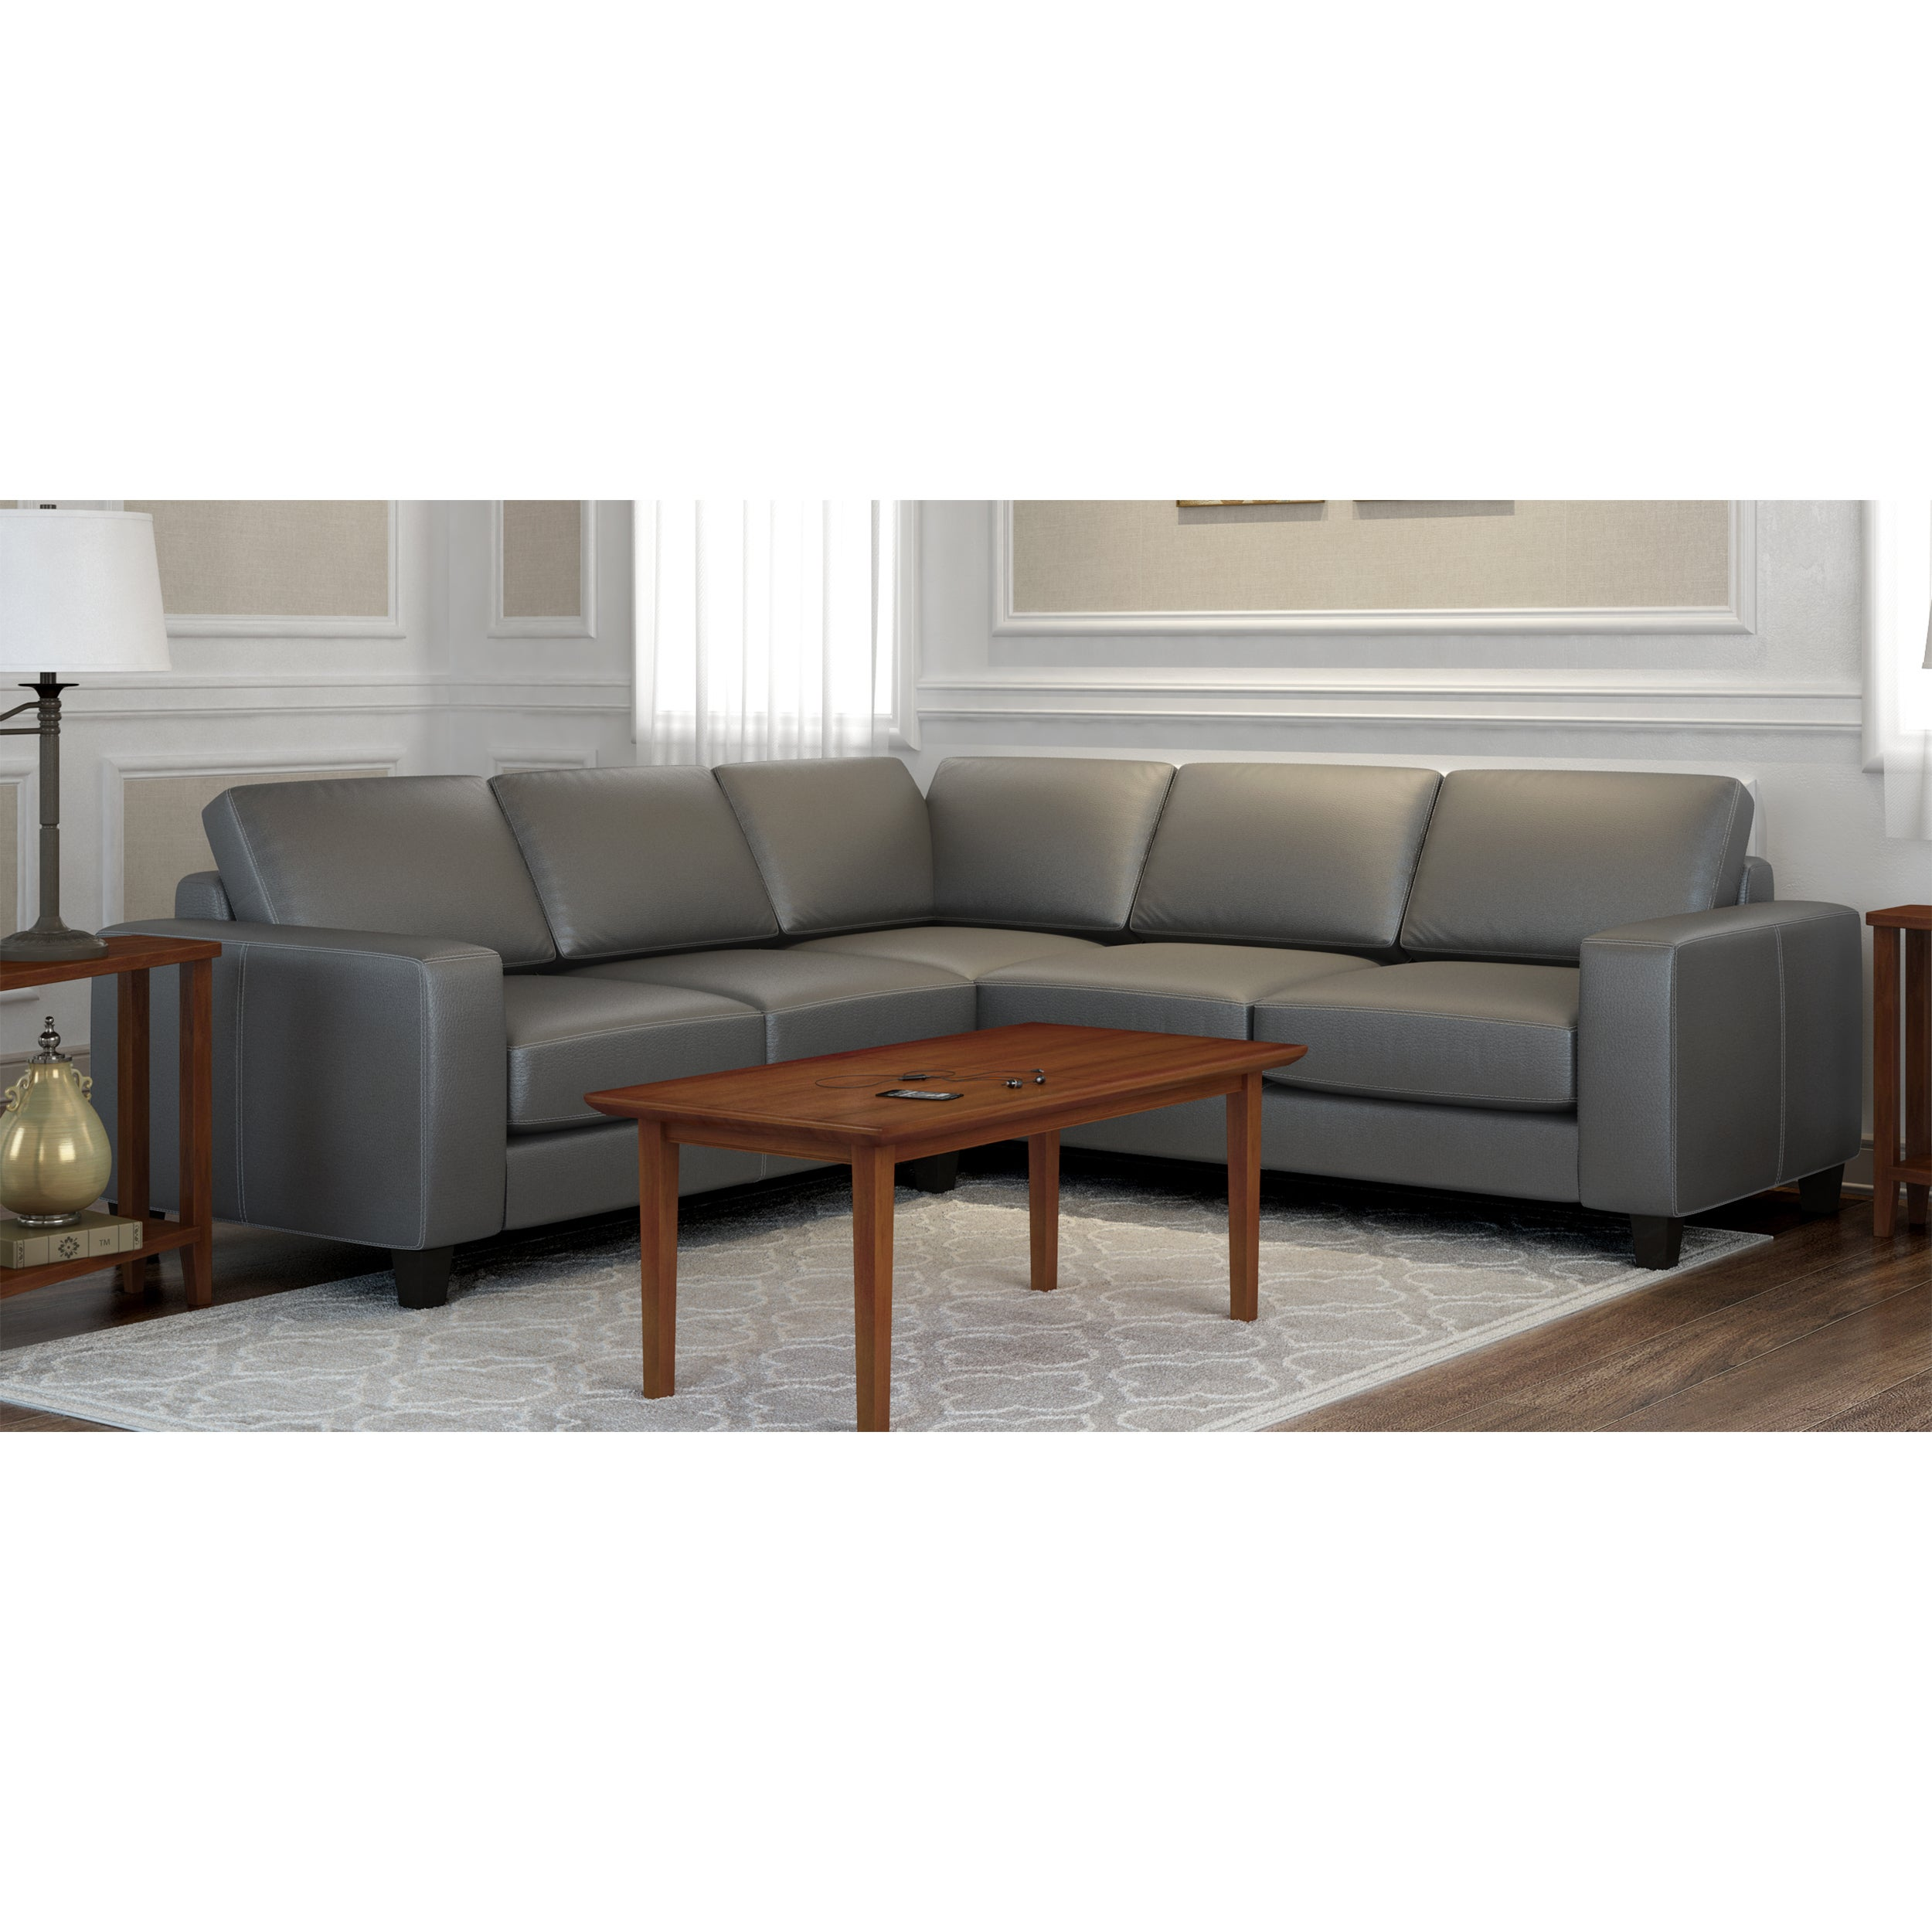 walnut couch full set recliners blue tan and corner dark size sofas of leather black sets white distressed stores piece color buy navy loveseat soft sofa camel burgundy cream brown living room taupe reclining chair recliner with chaise suite sectional large grey furniture